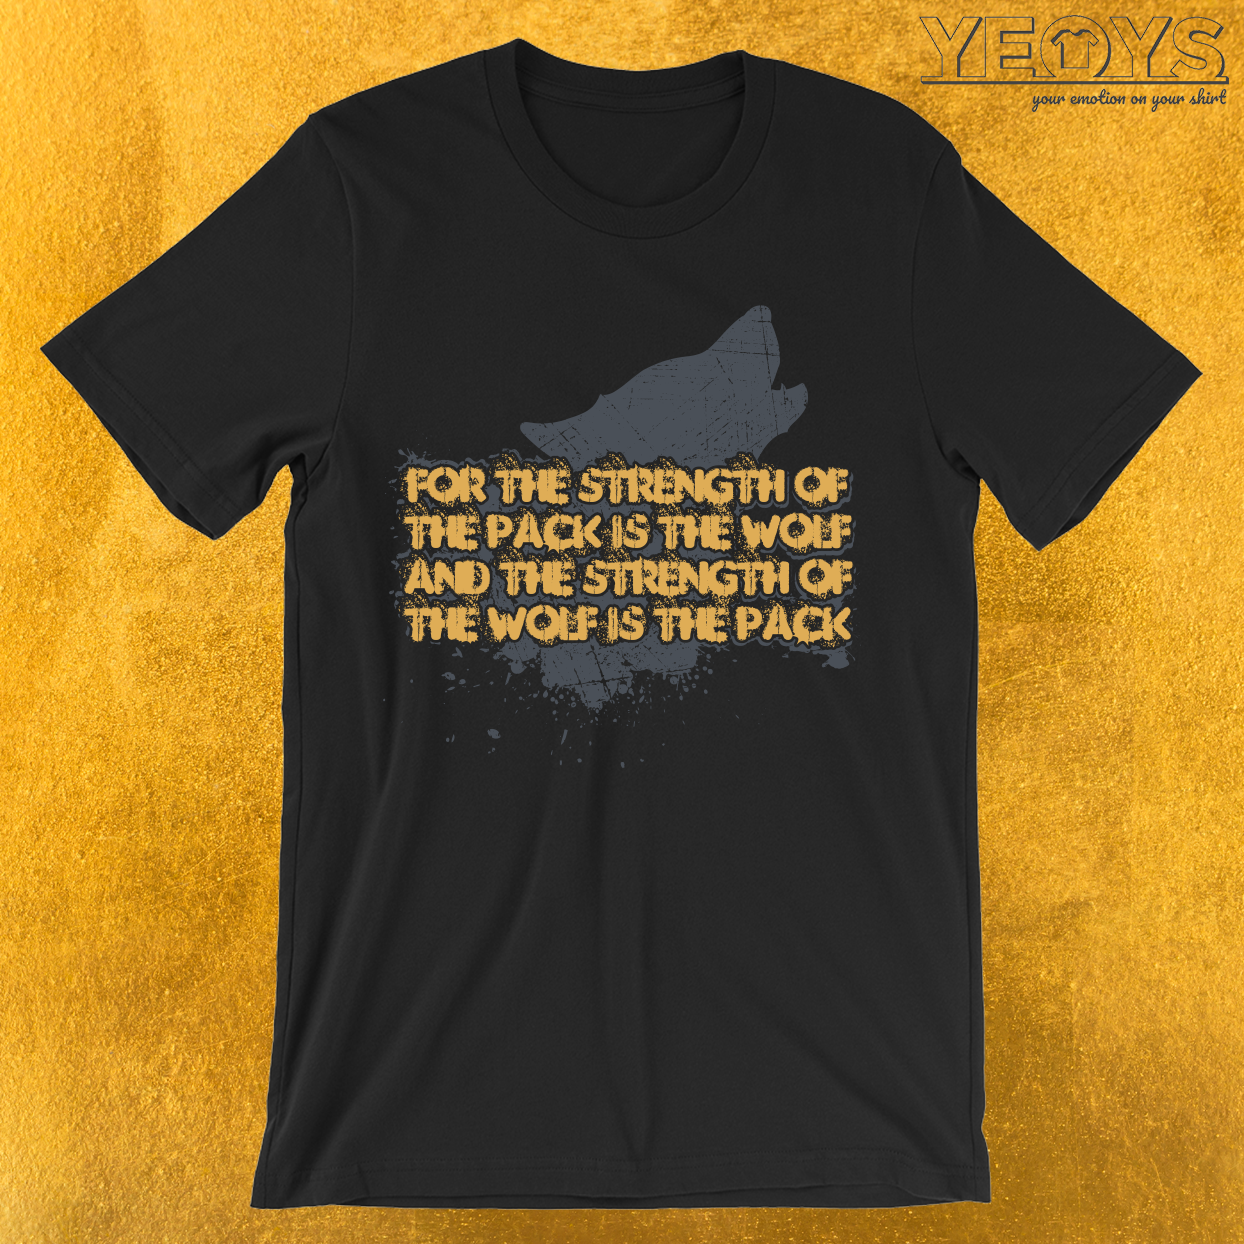 Strenght Of The Pack Is The Wolf T-Shirt